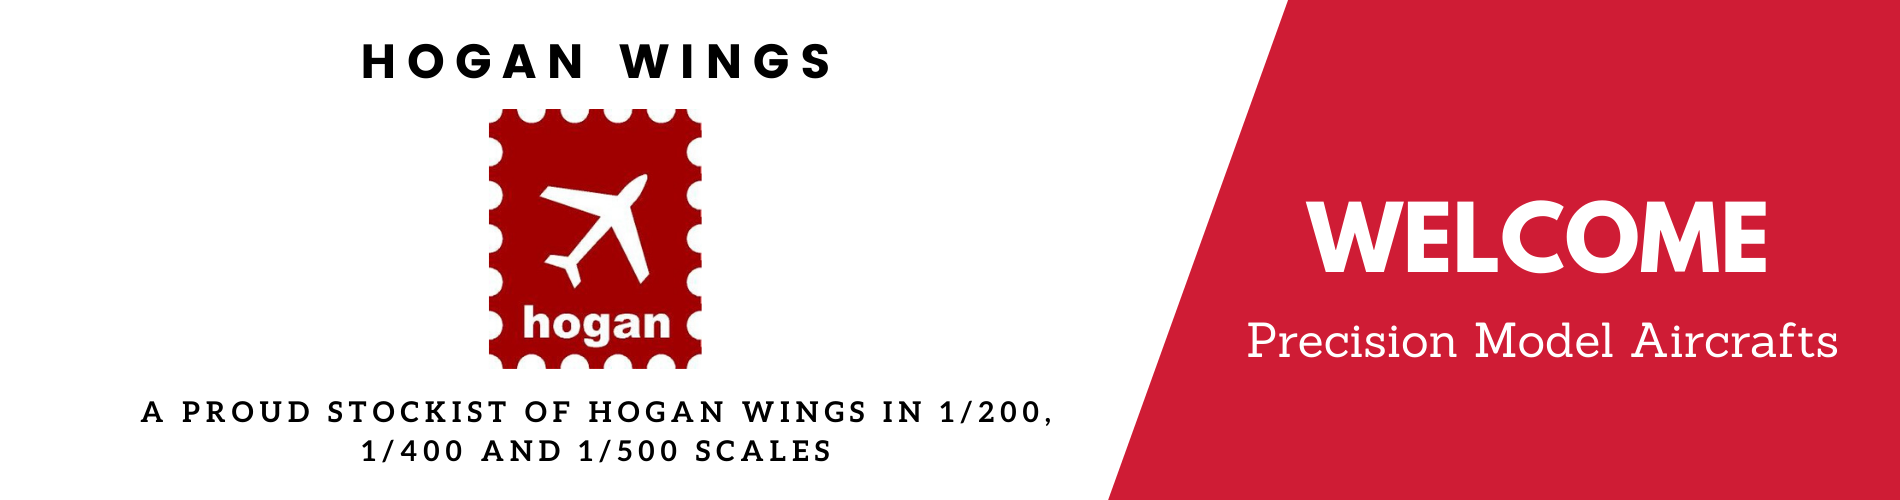 hogan-wings.png